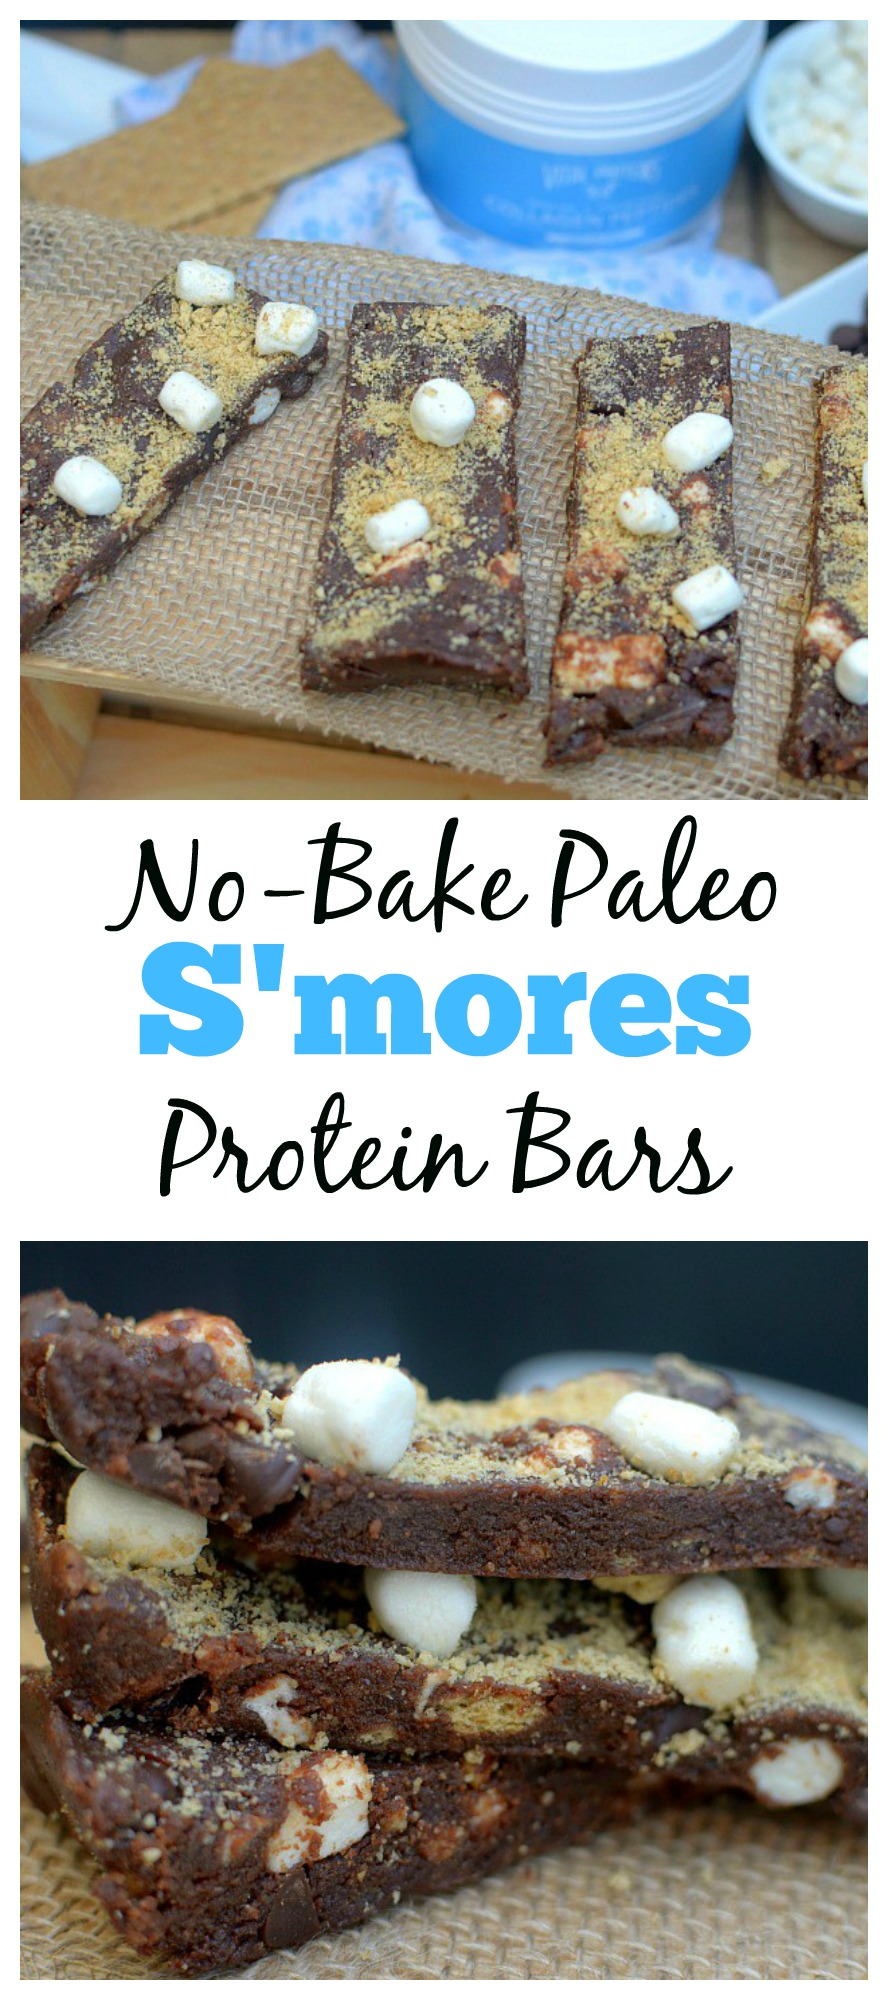 These No-Bake Paleo S'mores Protein Bars are a healthy, easy and delicious on-the-go snack! They only require a few ingredients and taste like S'MORES!